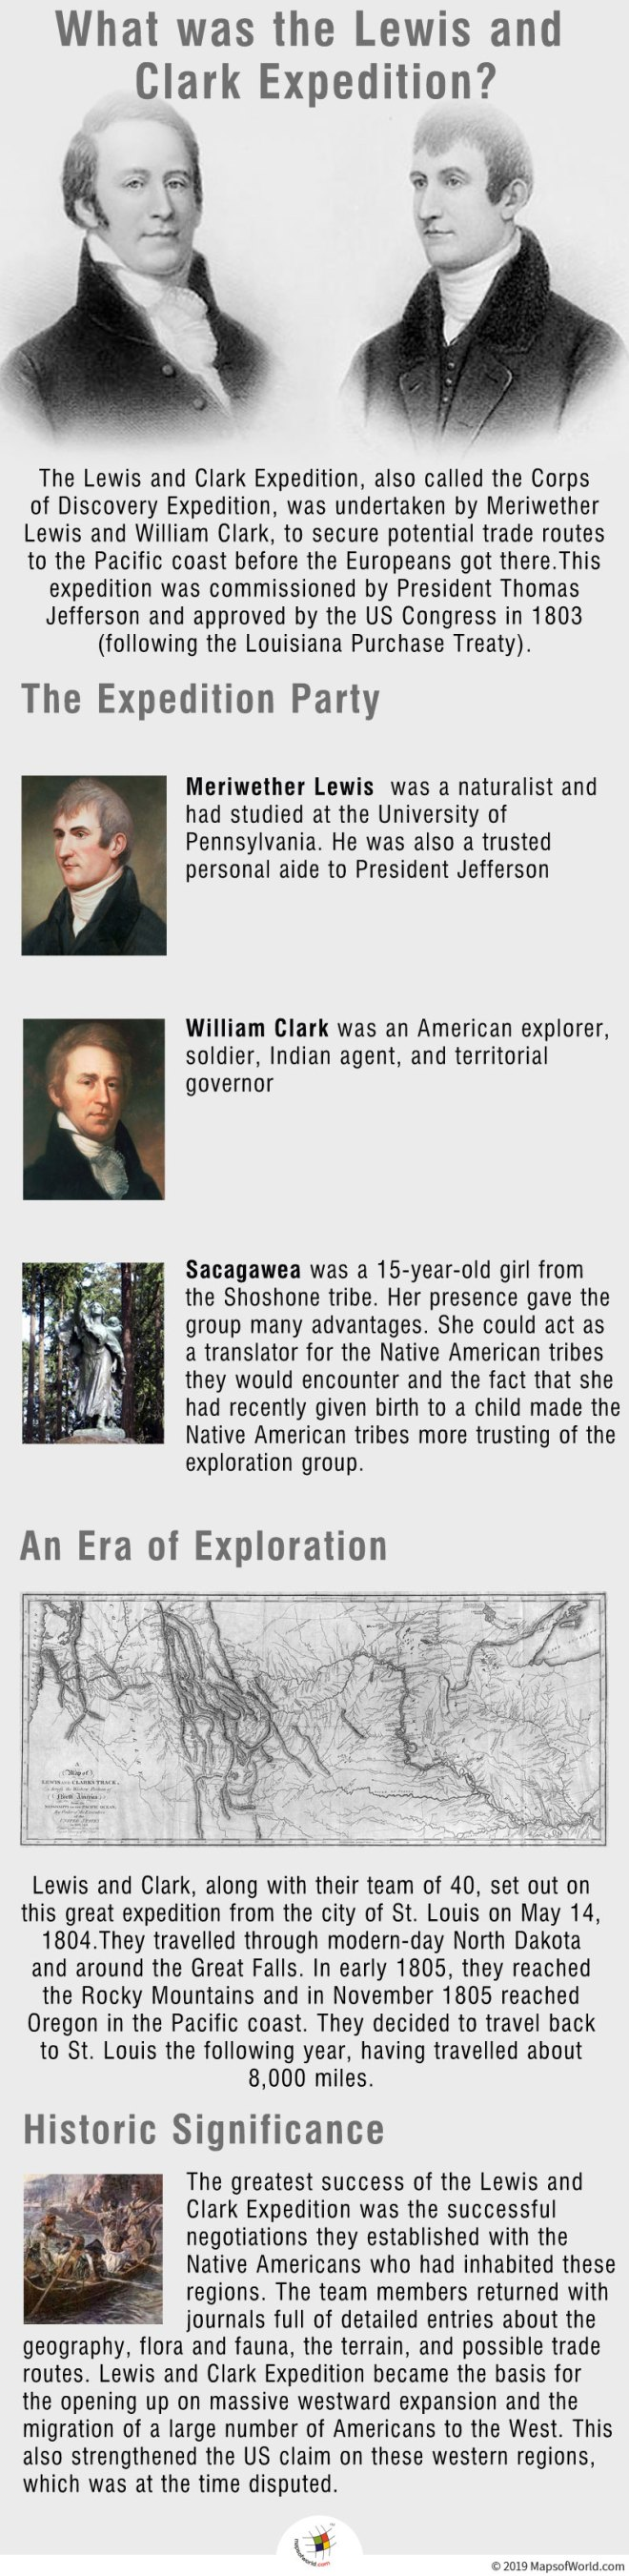 Infographic Giving Details on The Lewis and Clark Expedition